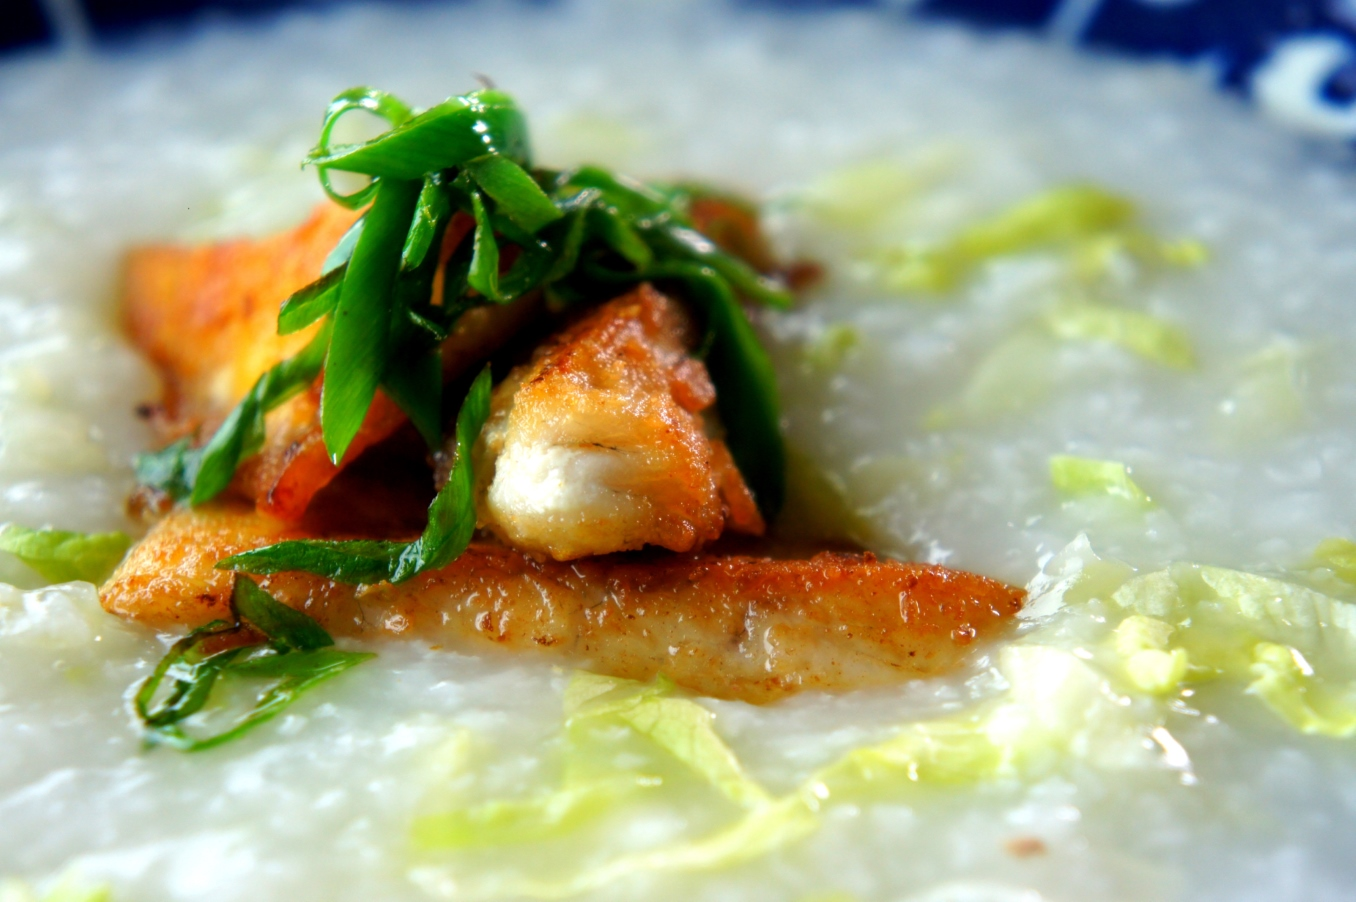 Rice congee with pan fried fish (low FODMAP, gluten free)